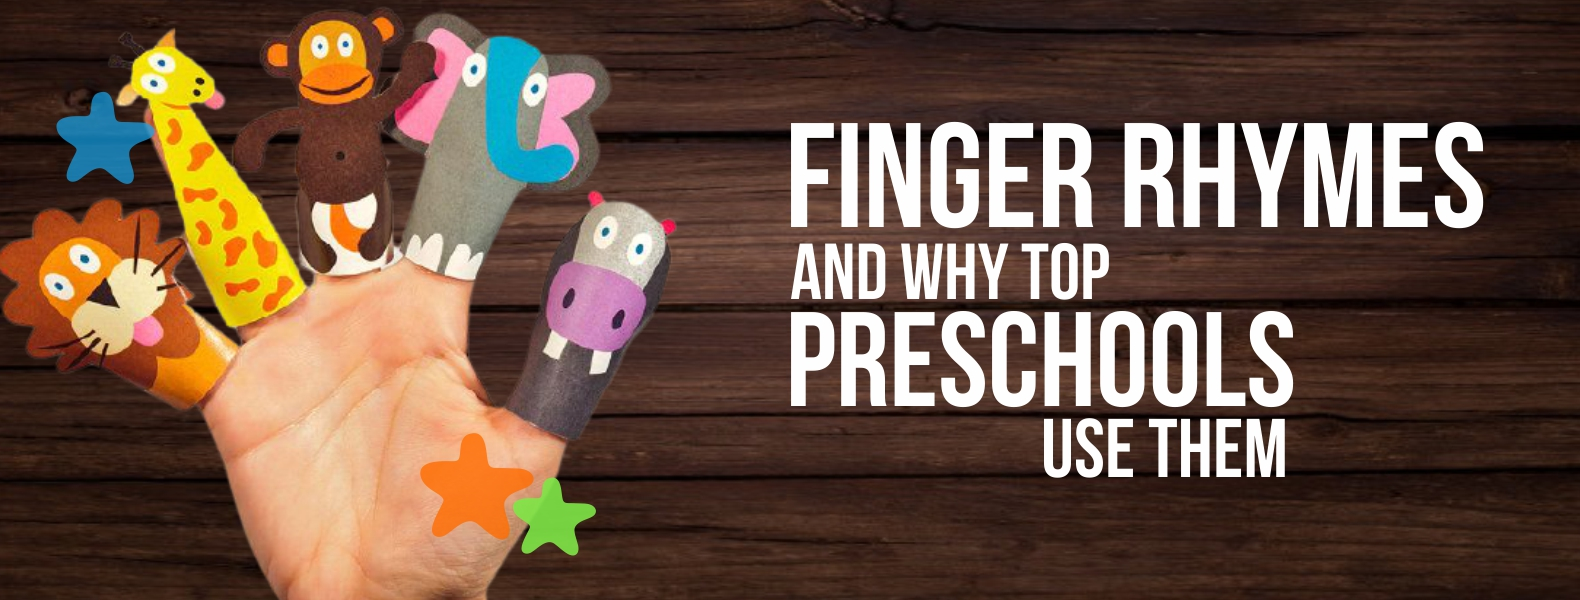 finger rhymes and why top preschools use them